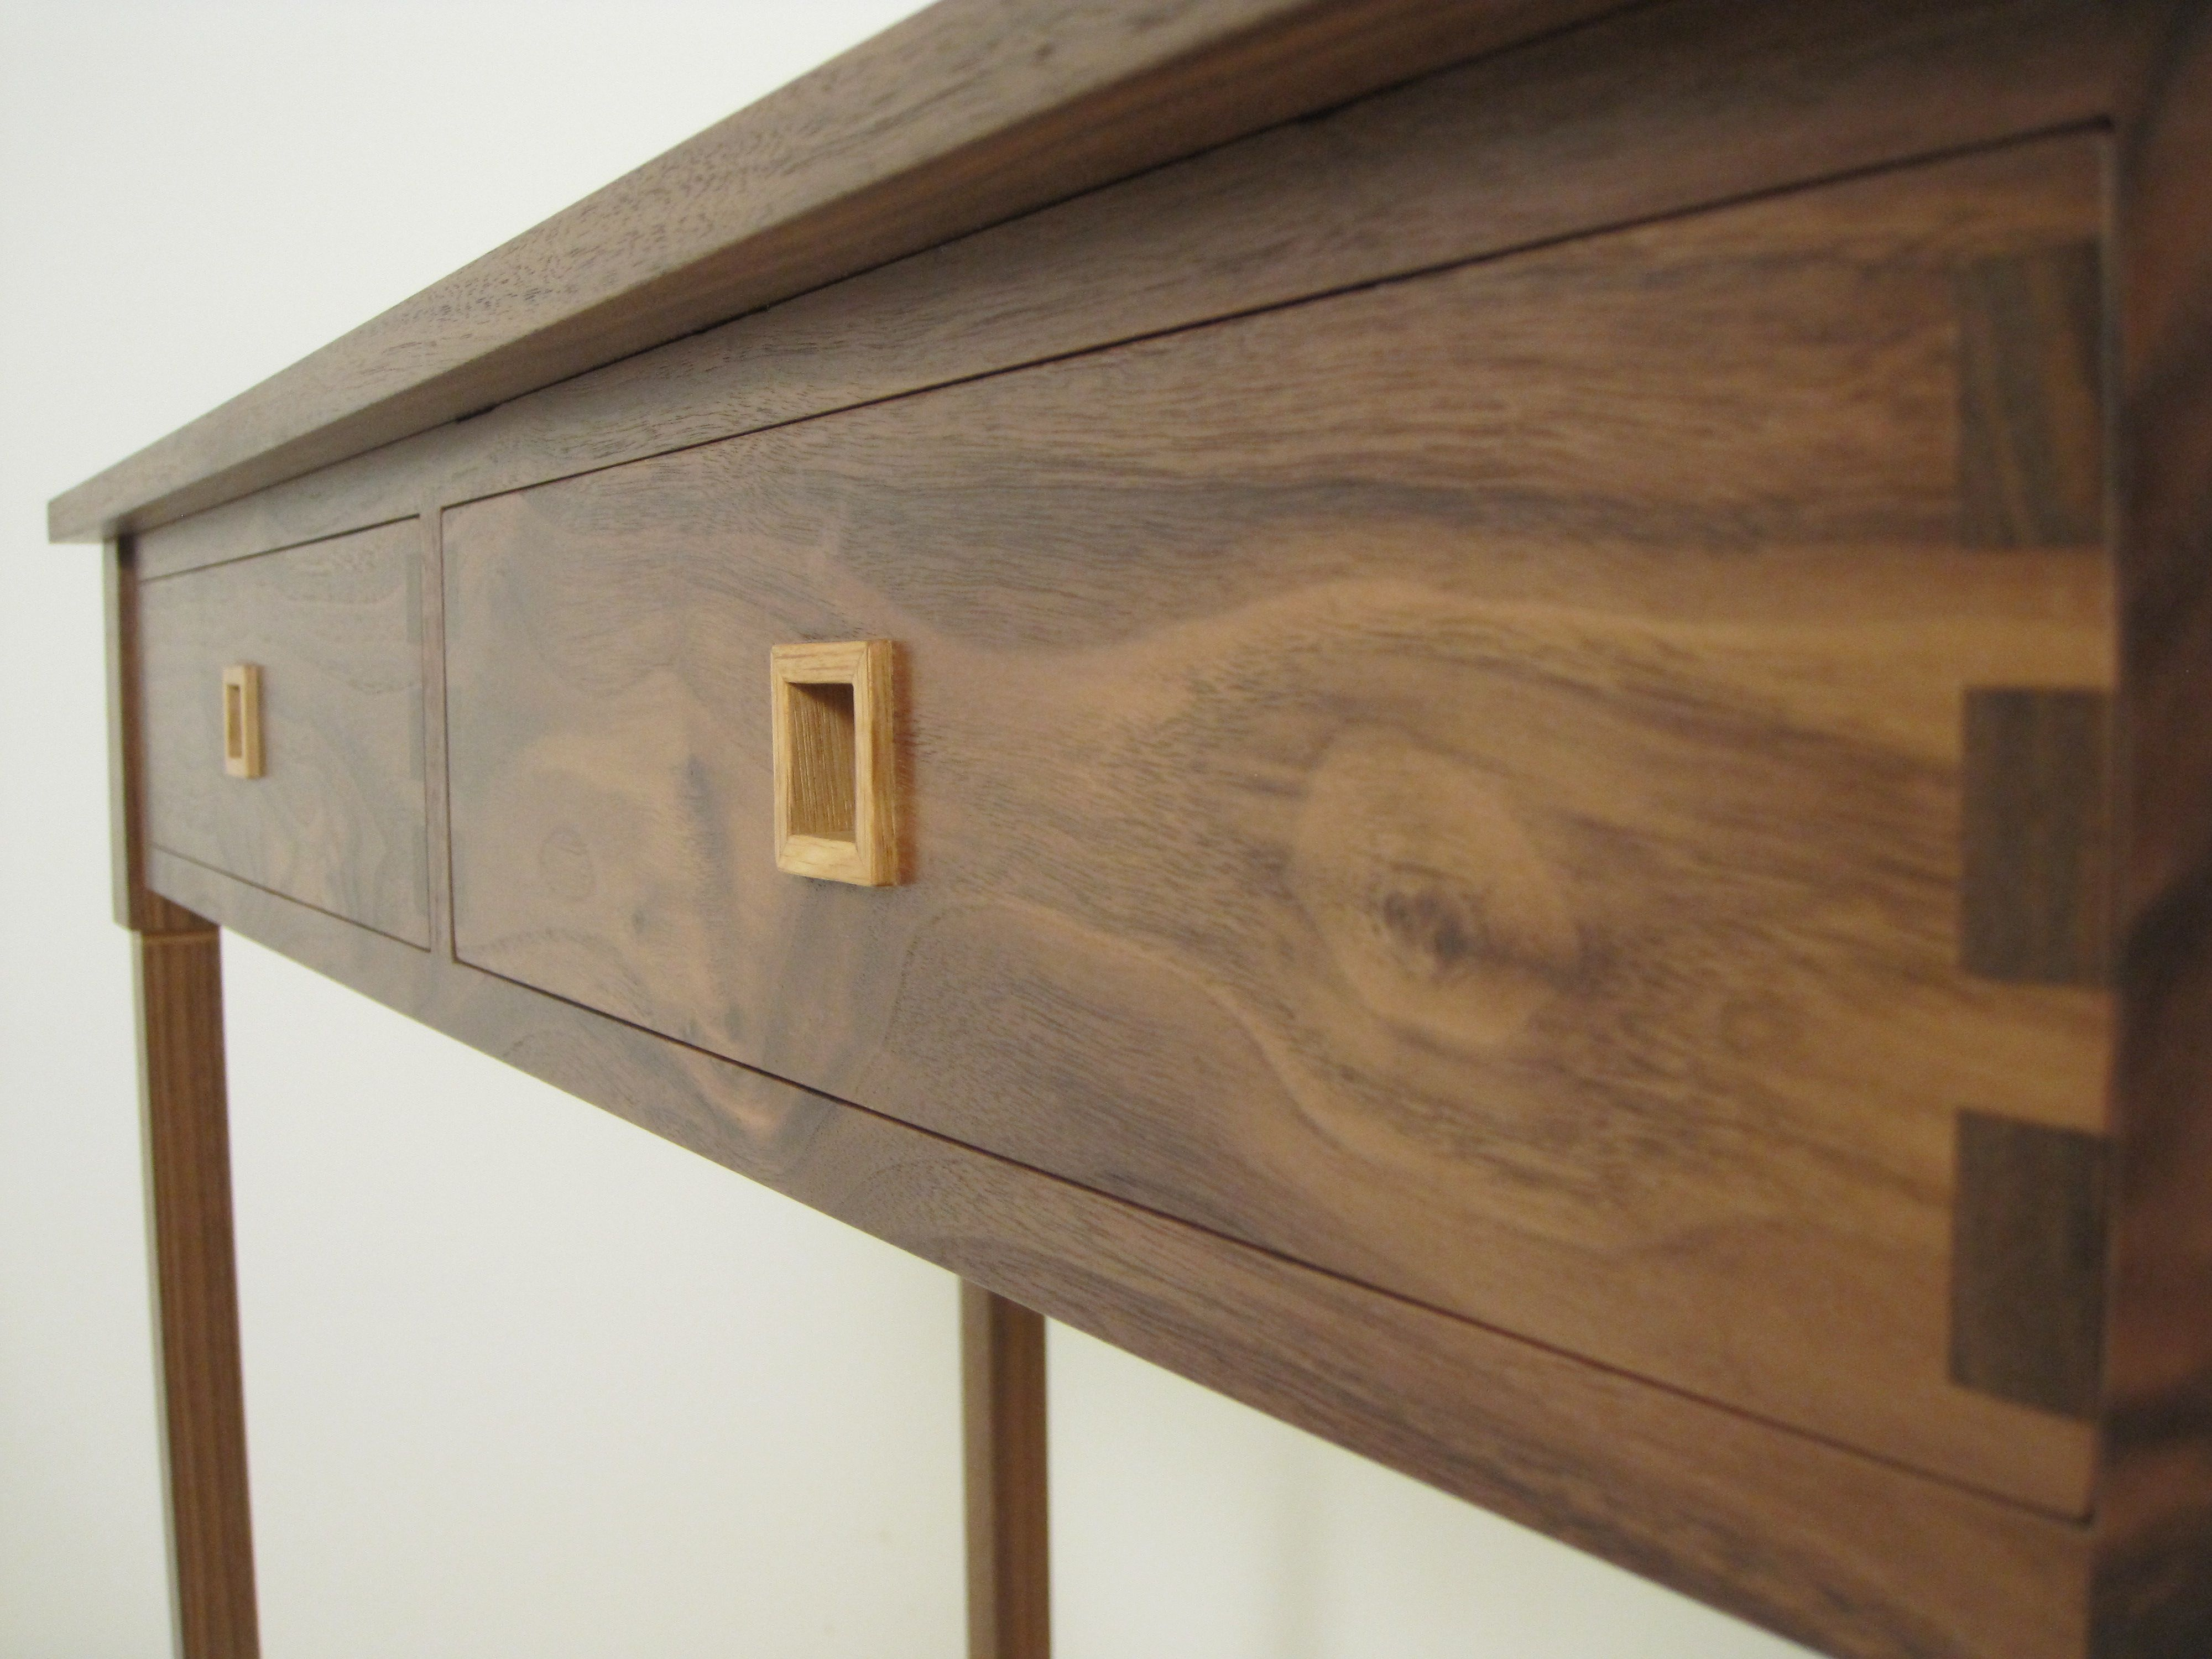 Console Table In American Black Walnut With Oak Top And Detailing